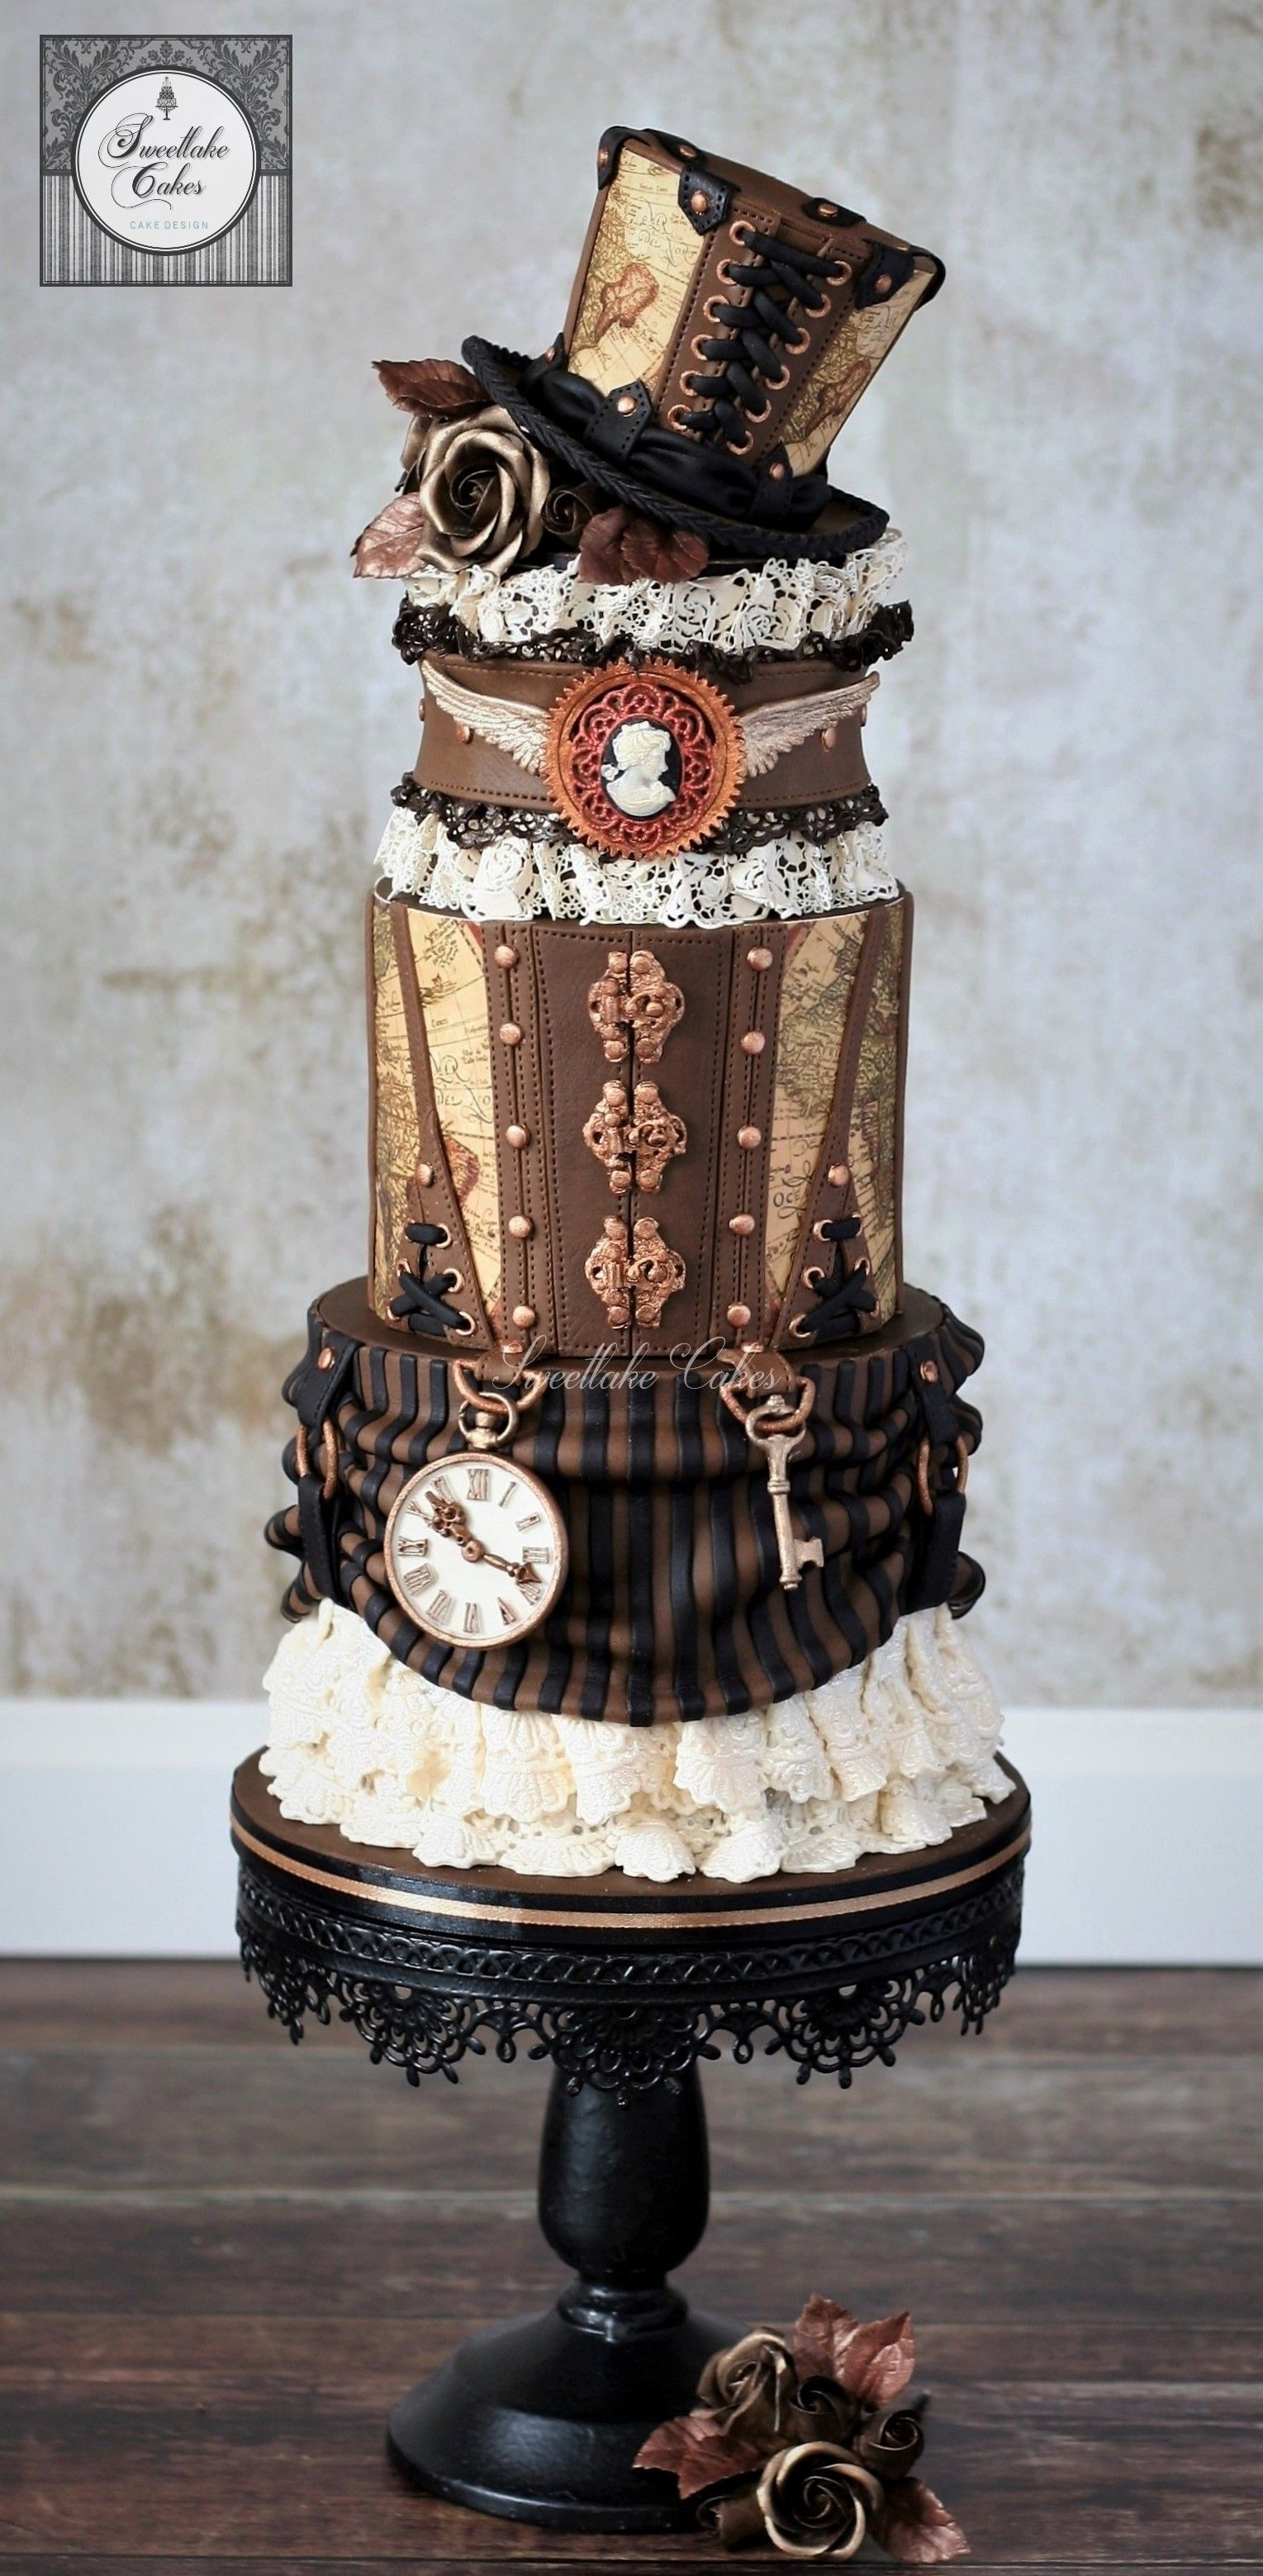 Steampunk Cake With Top Hat Cake Decorating Steampunk